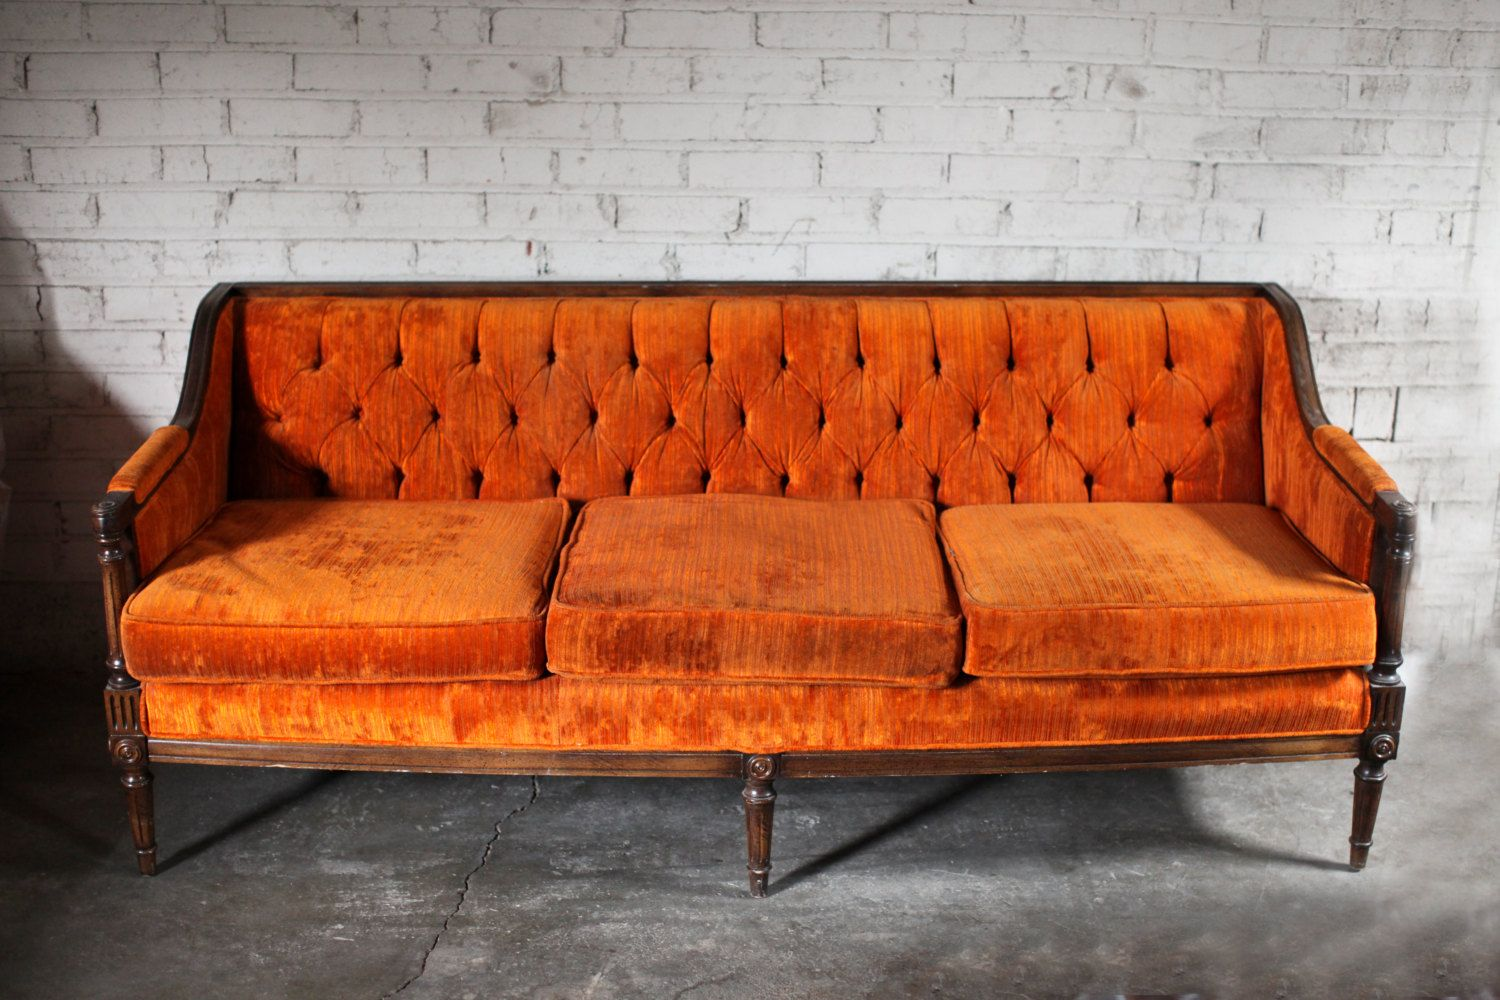 Vintage Orange Velvet Tufted Sofa Couch By Thefeelingofhome 2 200 00 Vintage Velvet Sofa Velvet Tufted Sofa Vintage Sofa